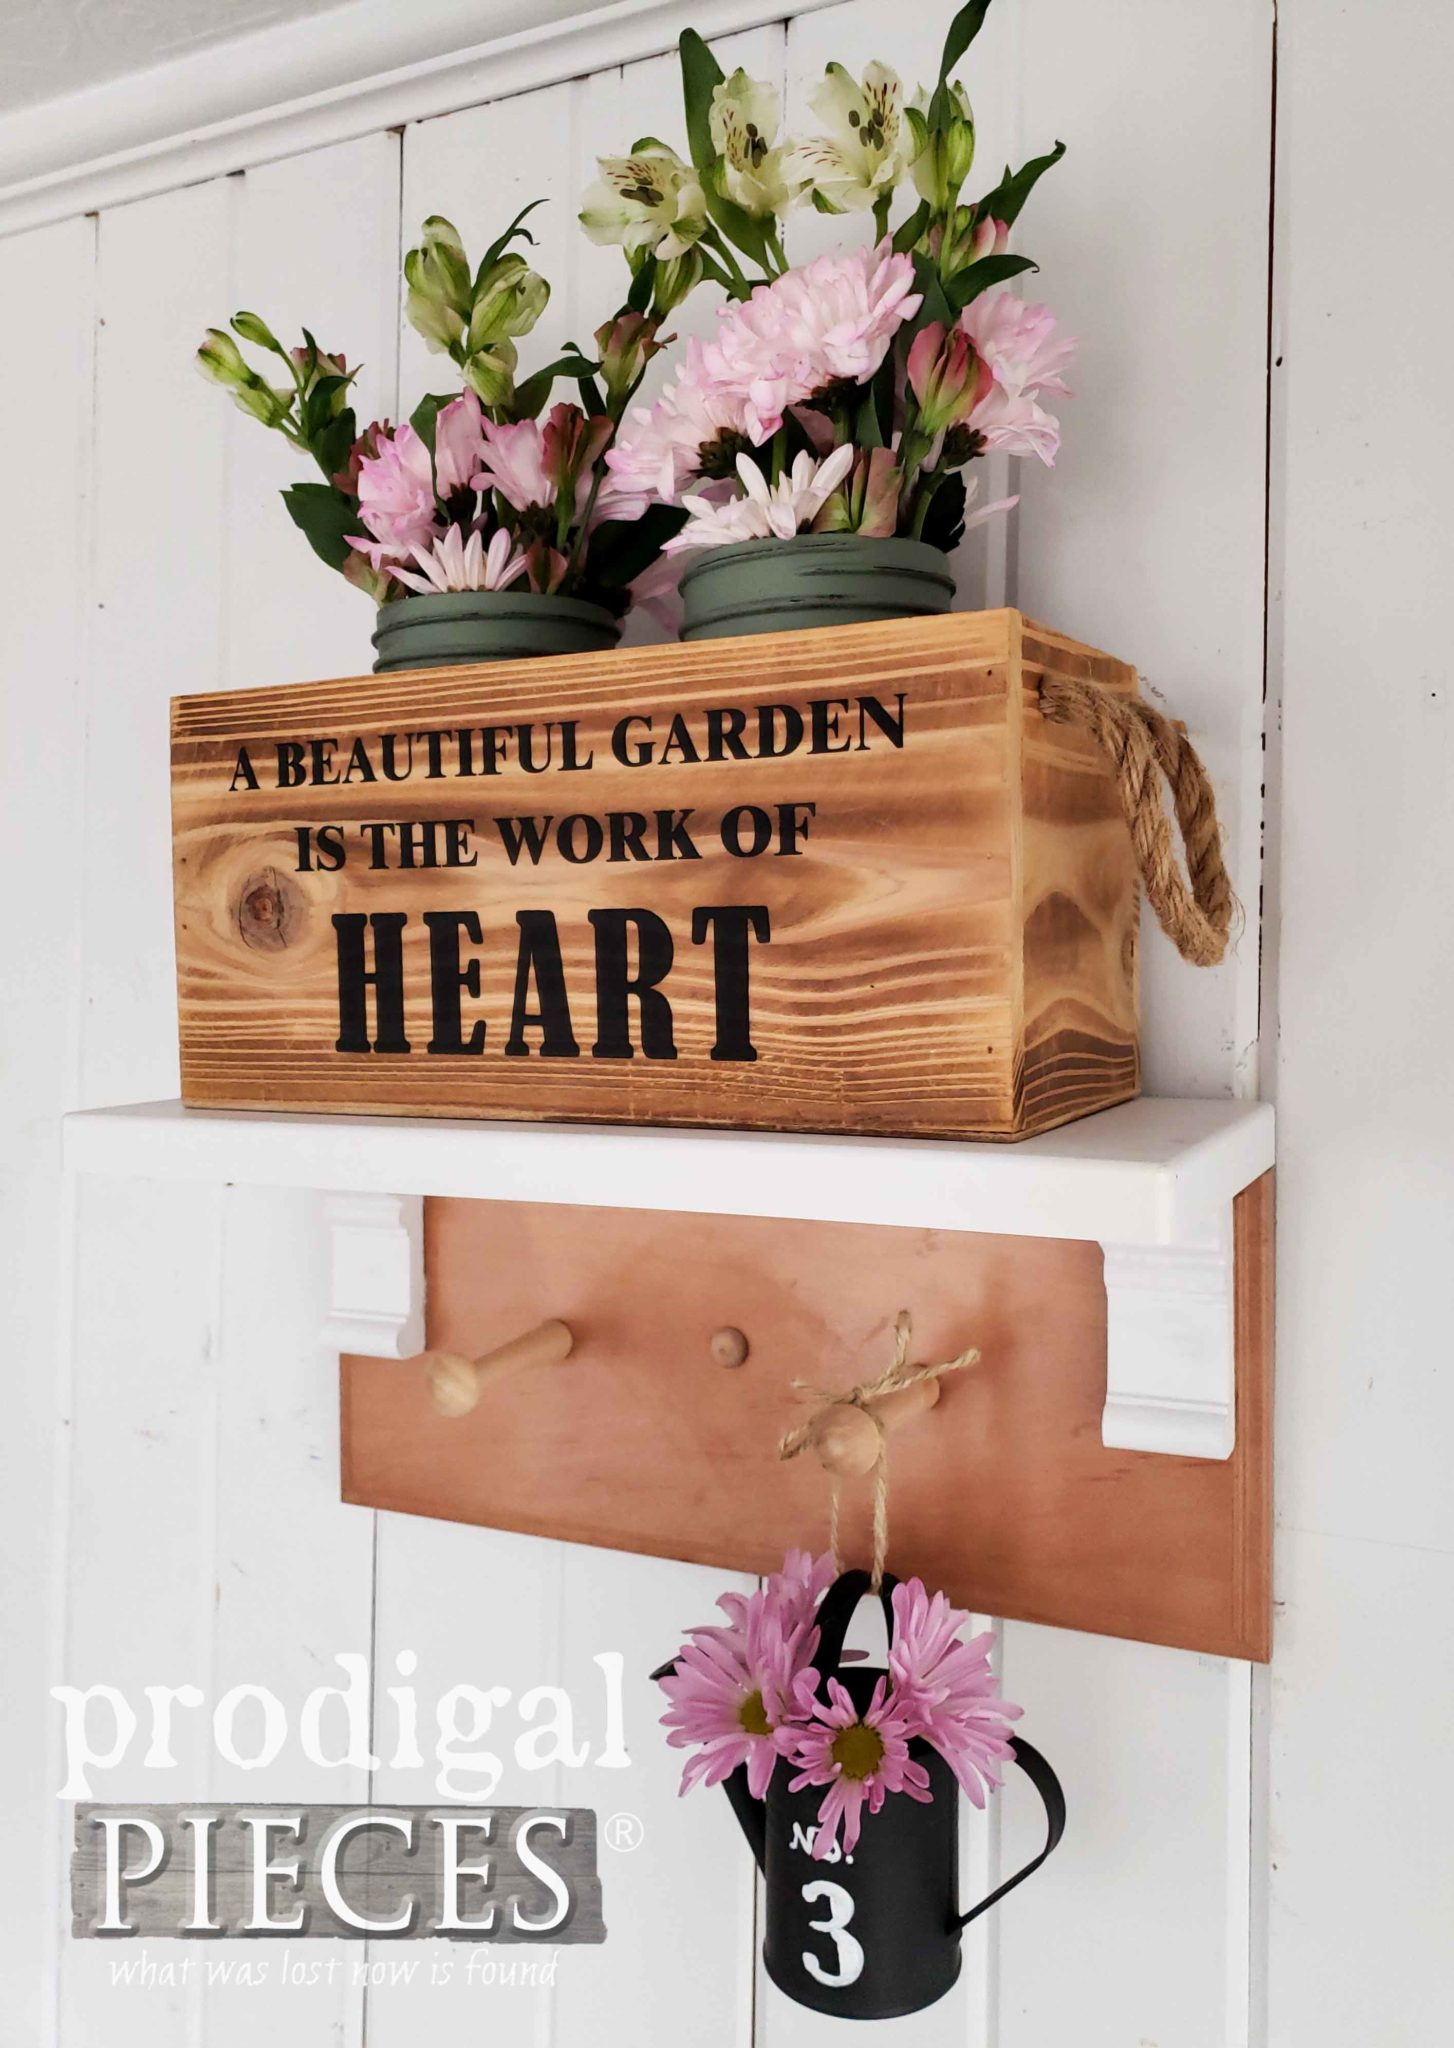 Vintage Style Farmhouse Garden Shelf Towel Rack by Larissa of Prodigal Pieces | prodigalpieces.com #prodigalpieces #diy #handamde #home #shopping #homedecor #farmhouse #homedecorideas